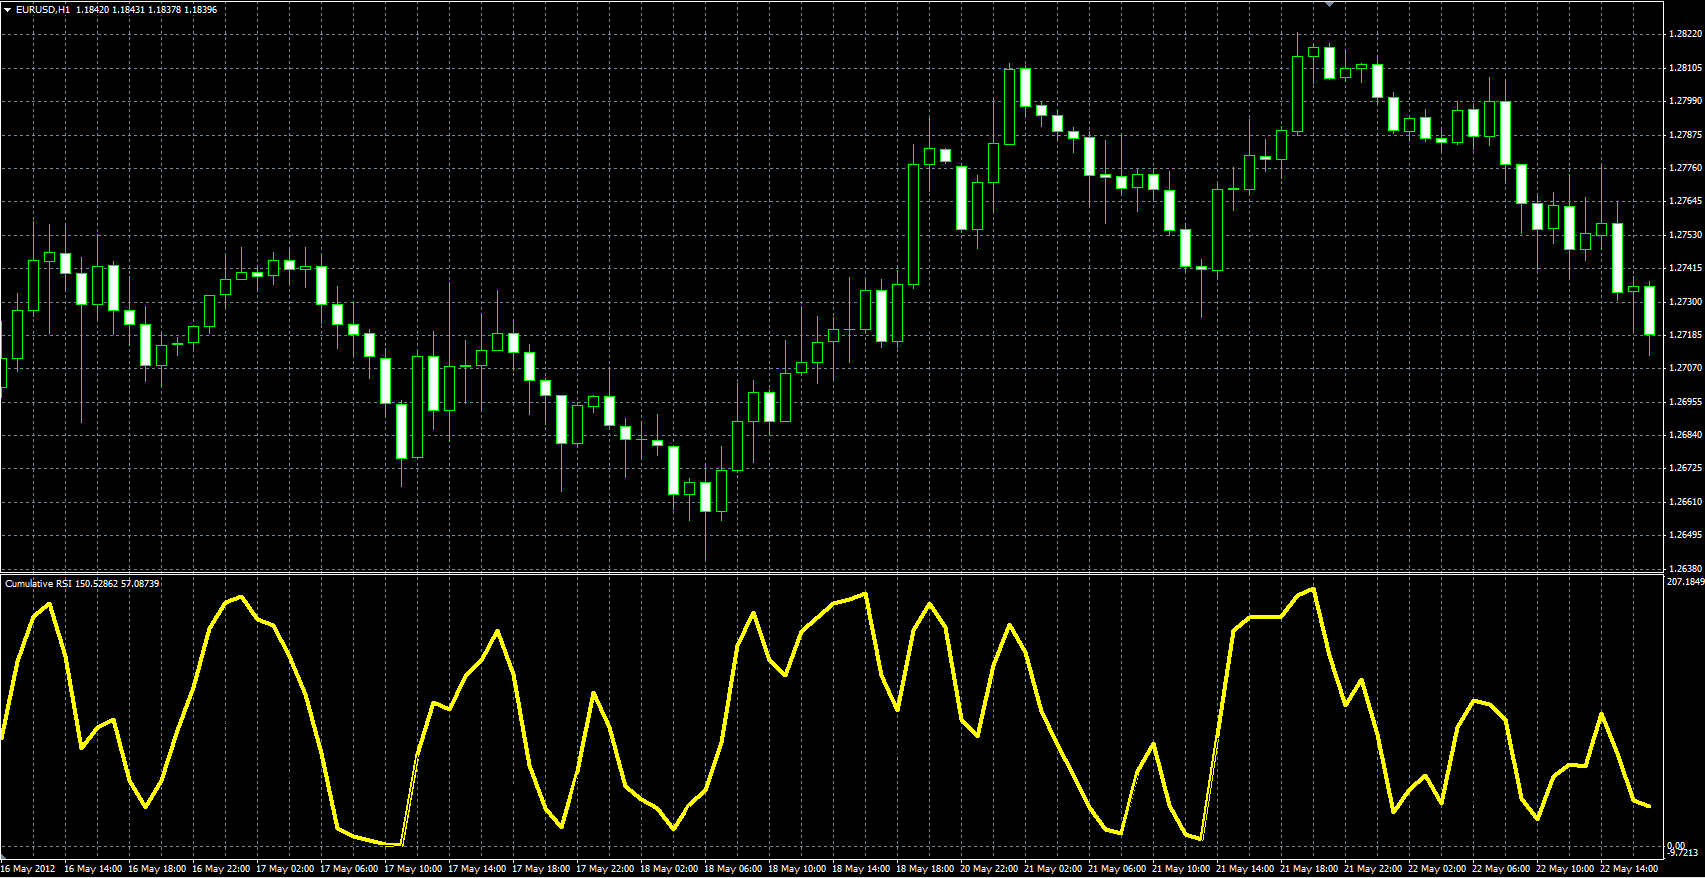 RSI indicator - Relative Strength Index, RSI - Technical Indicators